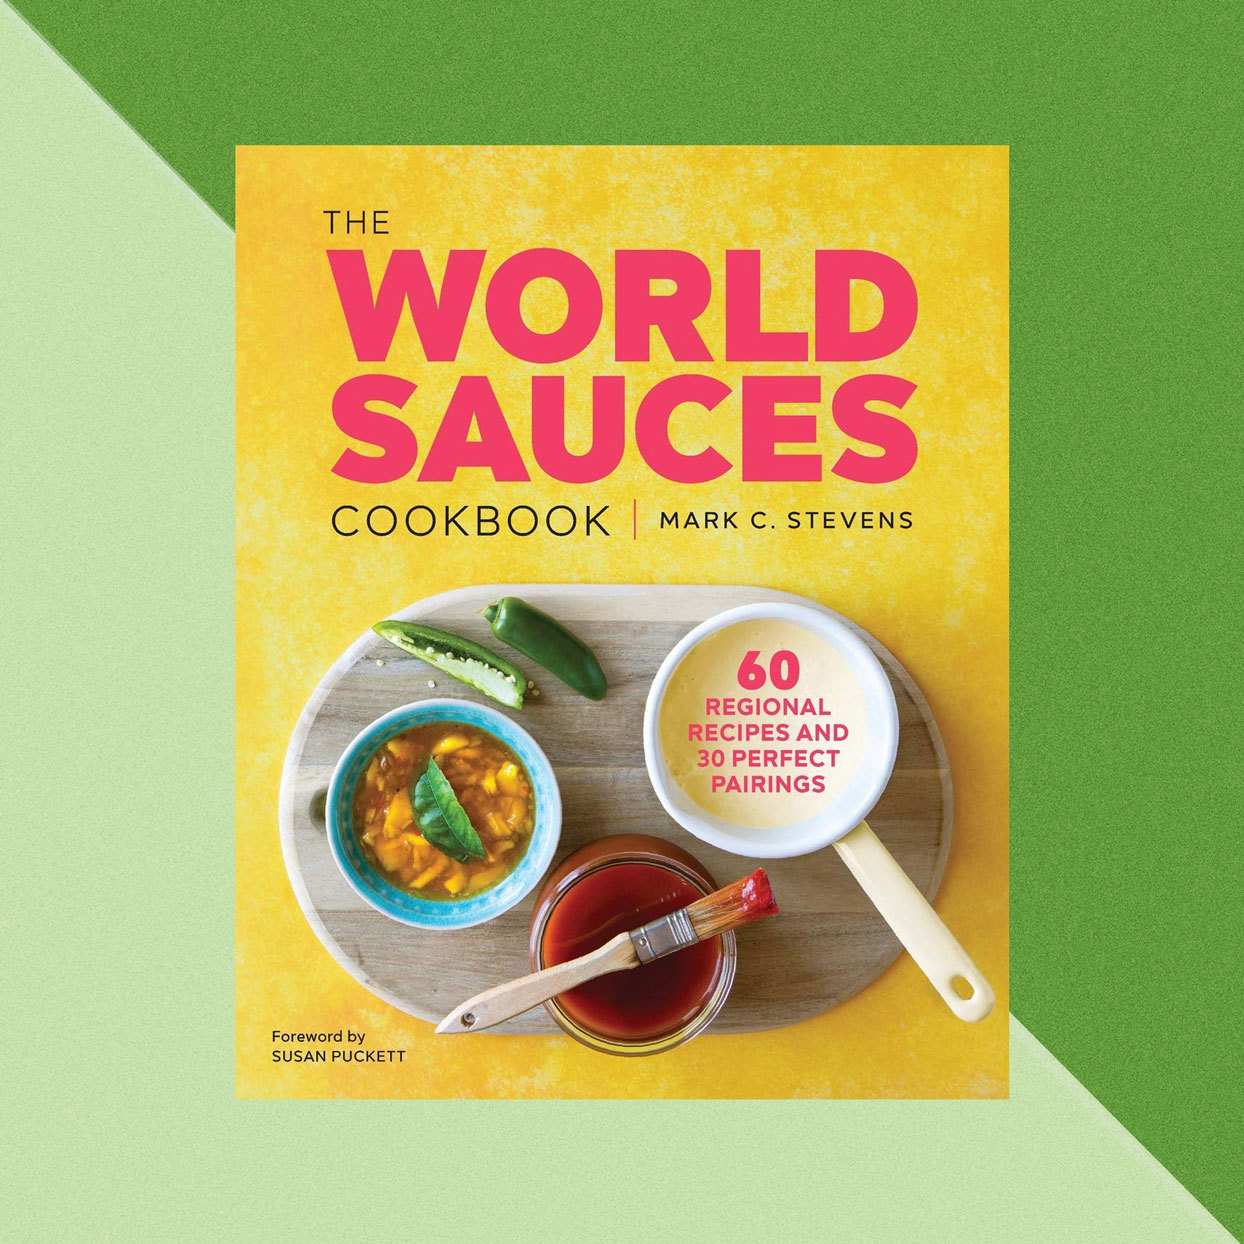 the world sauces cookbook